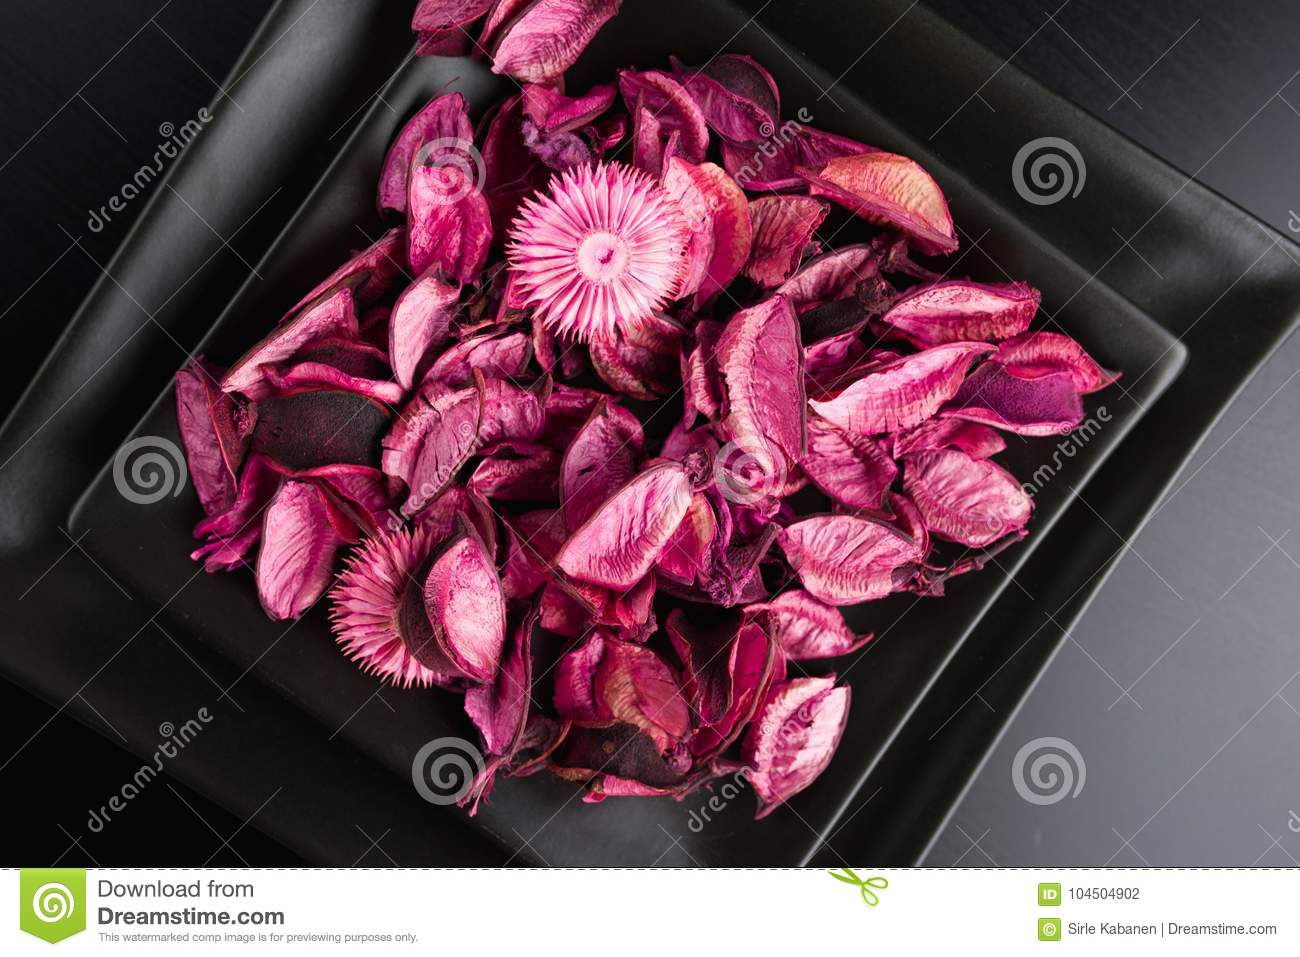 Pink Dried Flowers Petals Potpourri On Black Backrgound Stock Photo